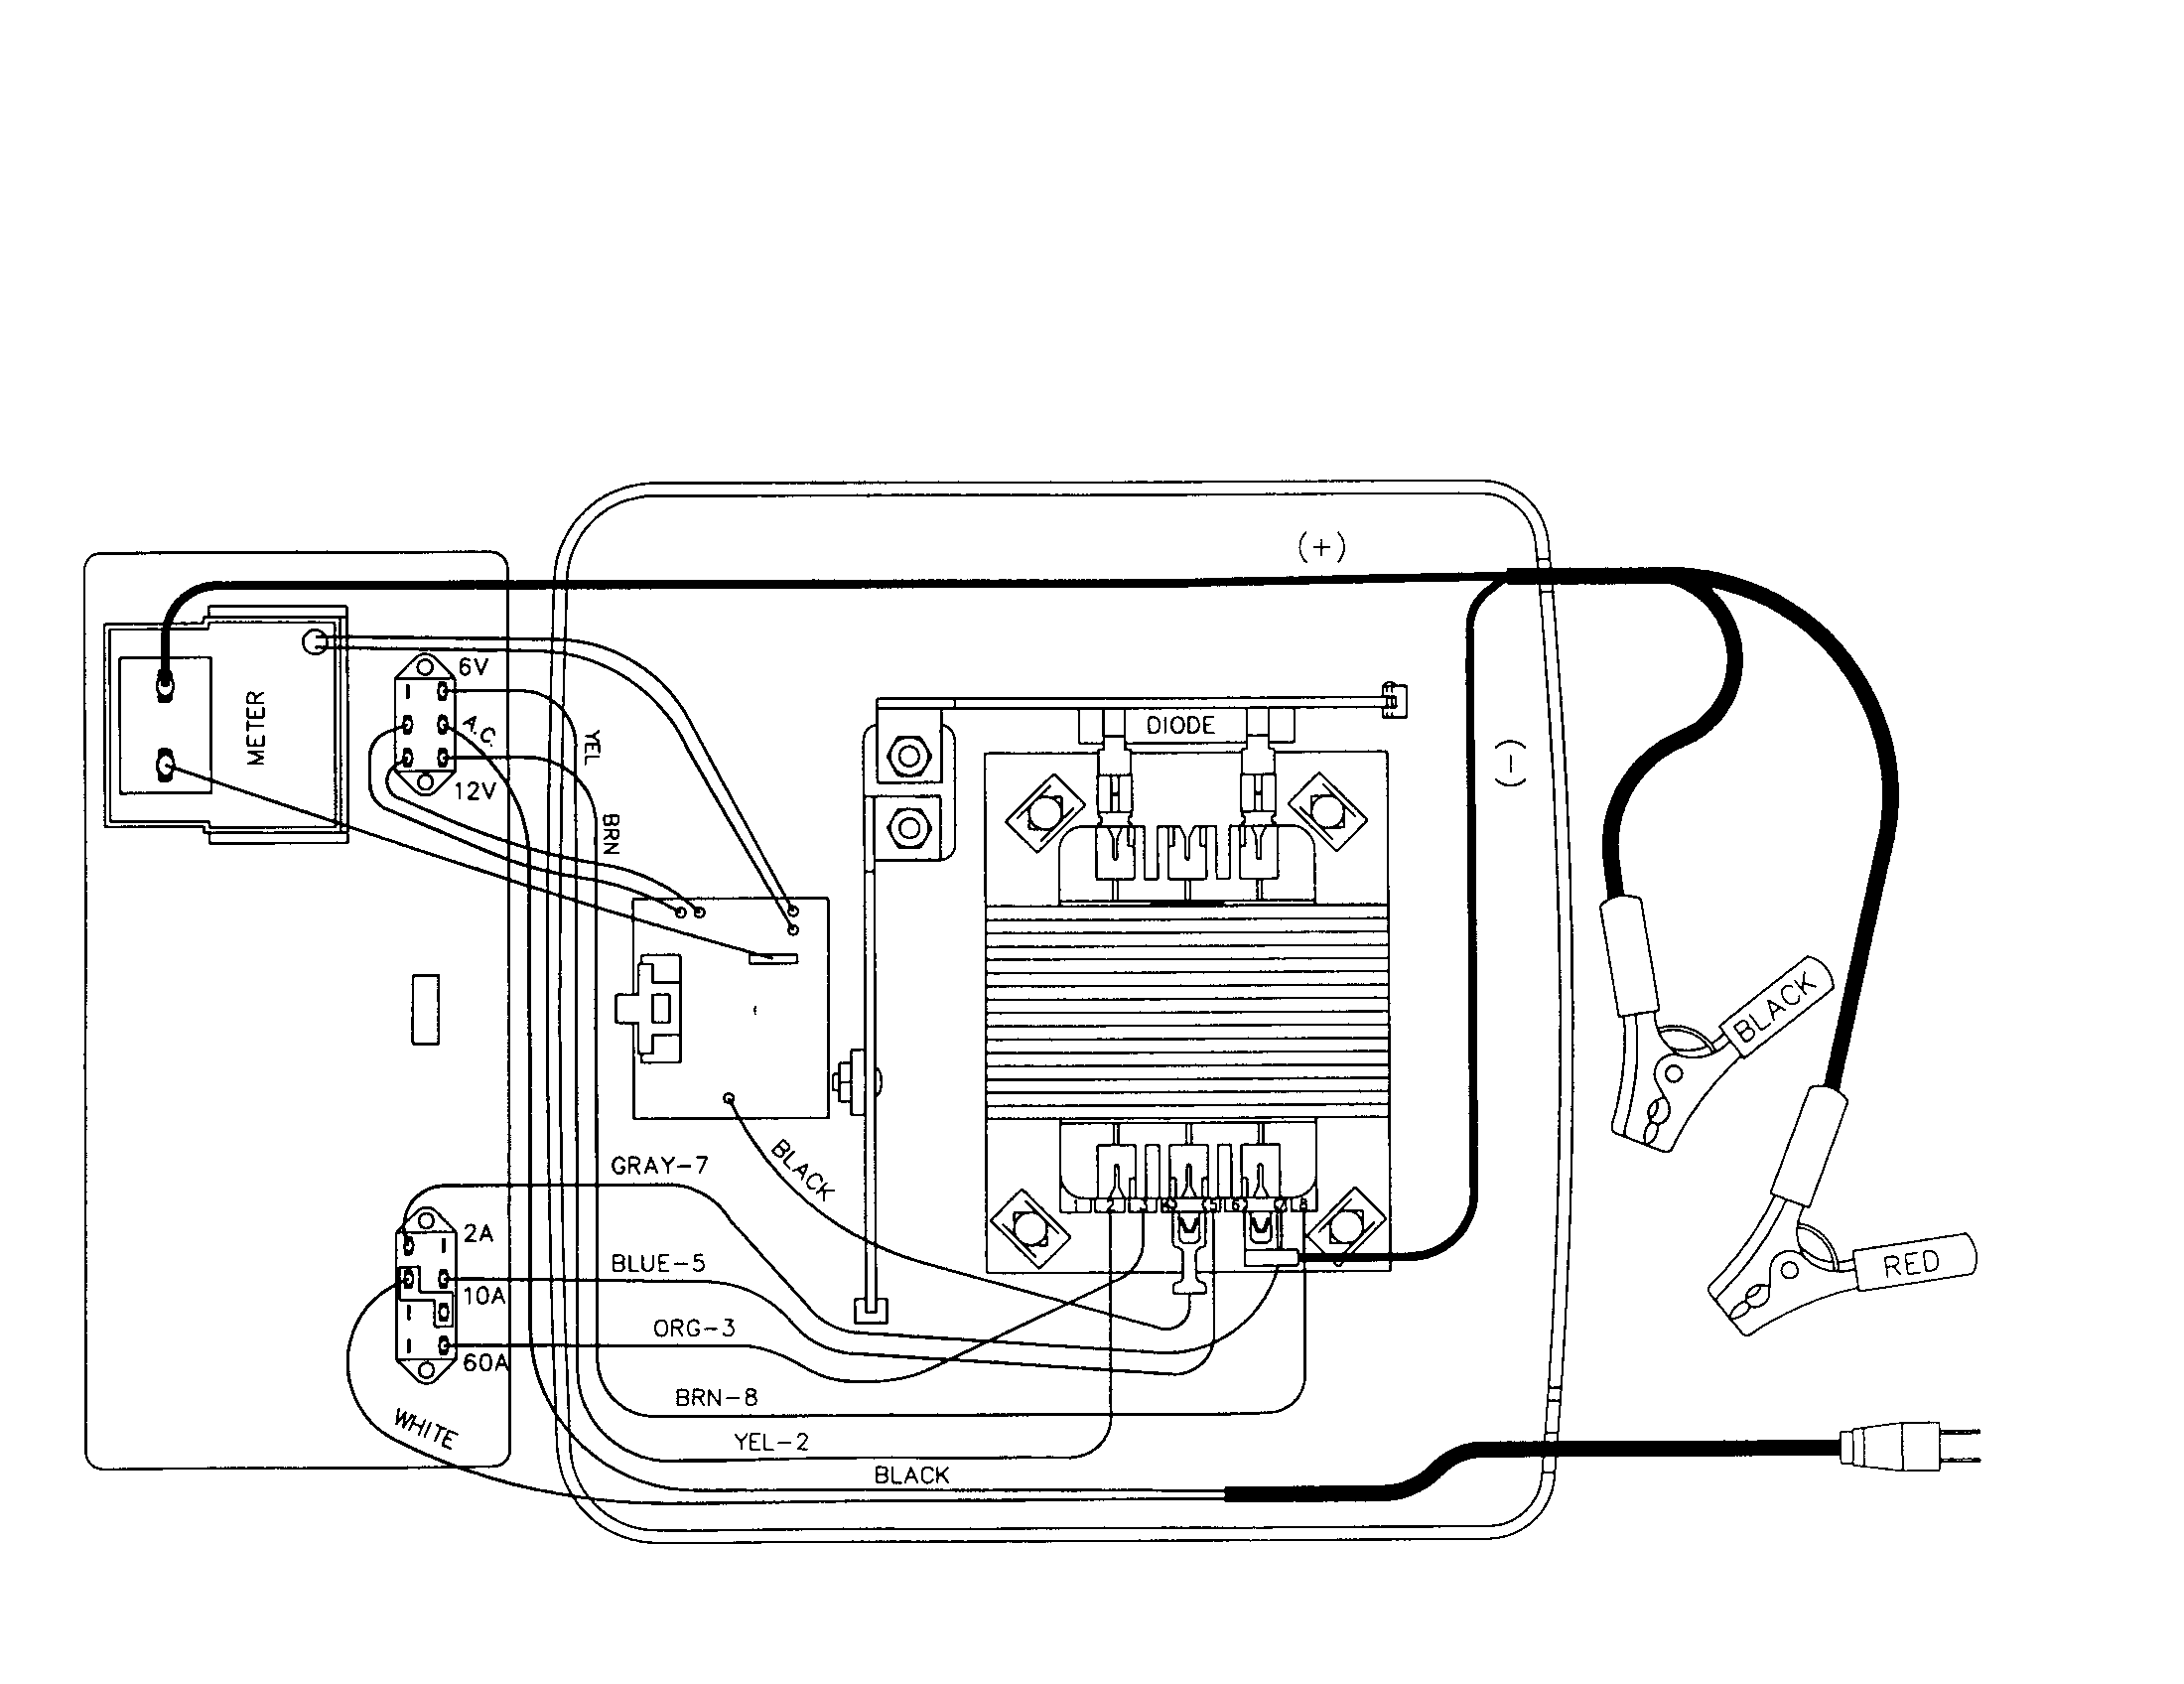 WRG-5568] Napa Battery Charger Wiring Diagram on